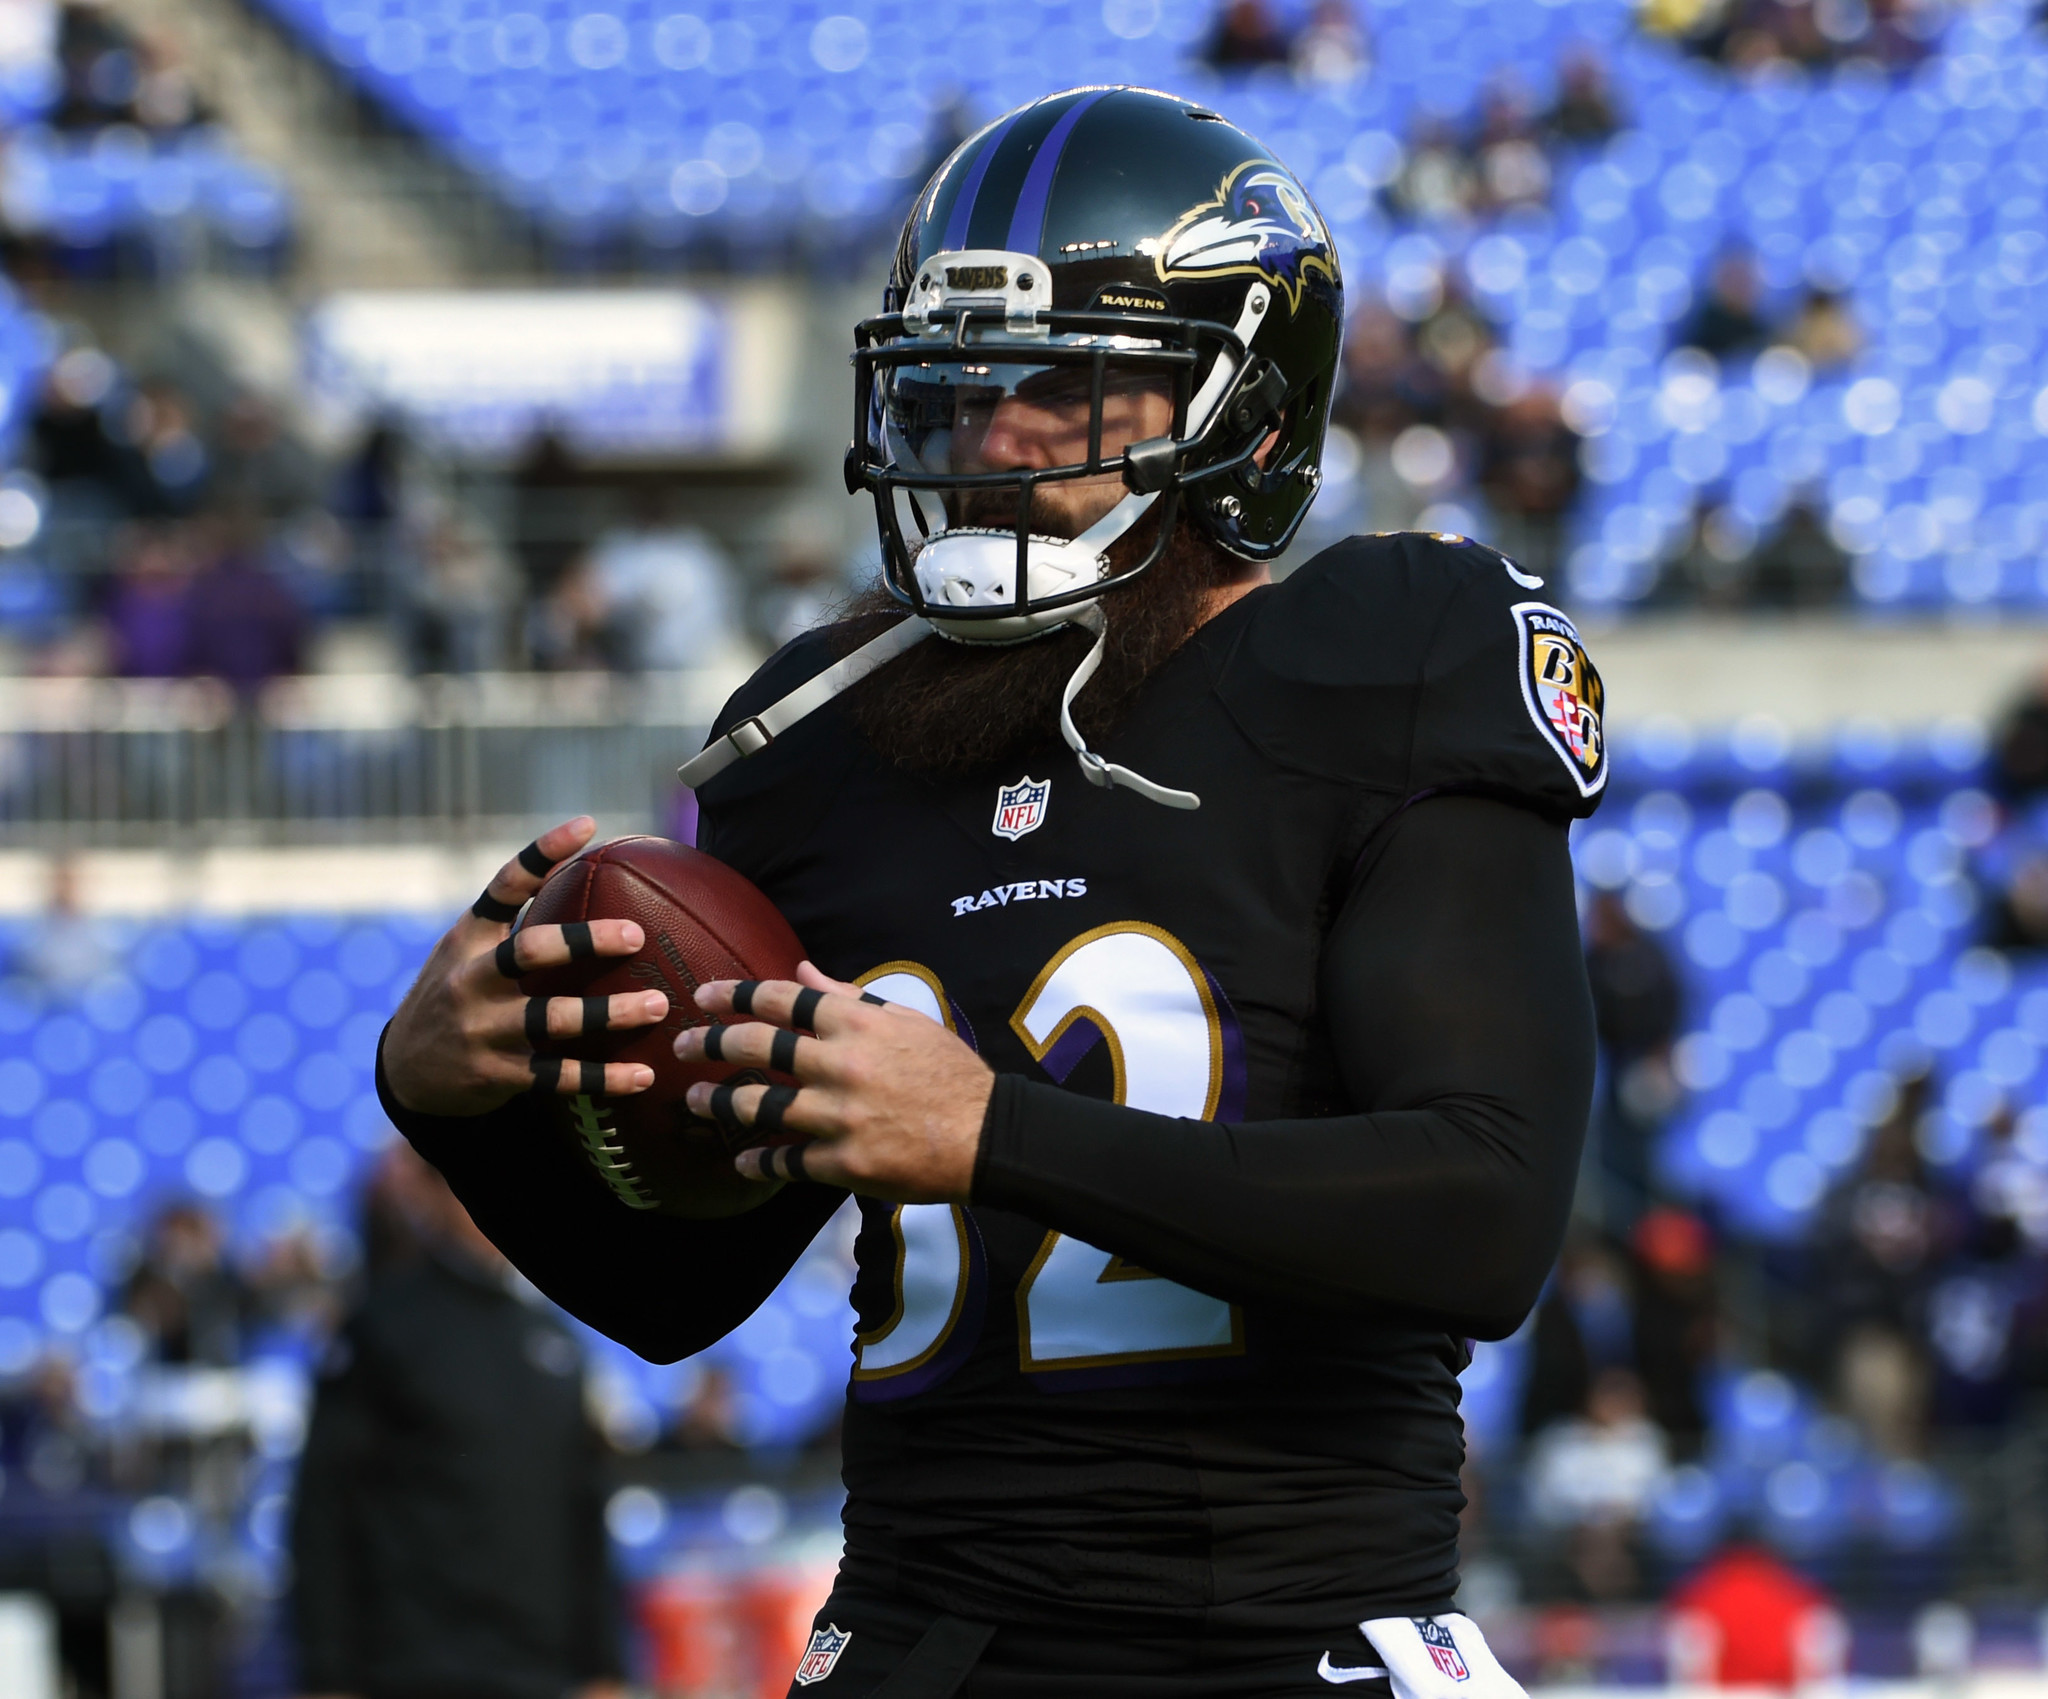 Ravens strong safety Eric Weddle refuses to dwell on being snubbed